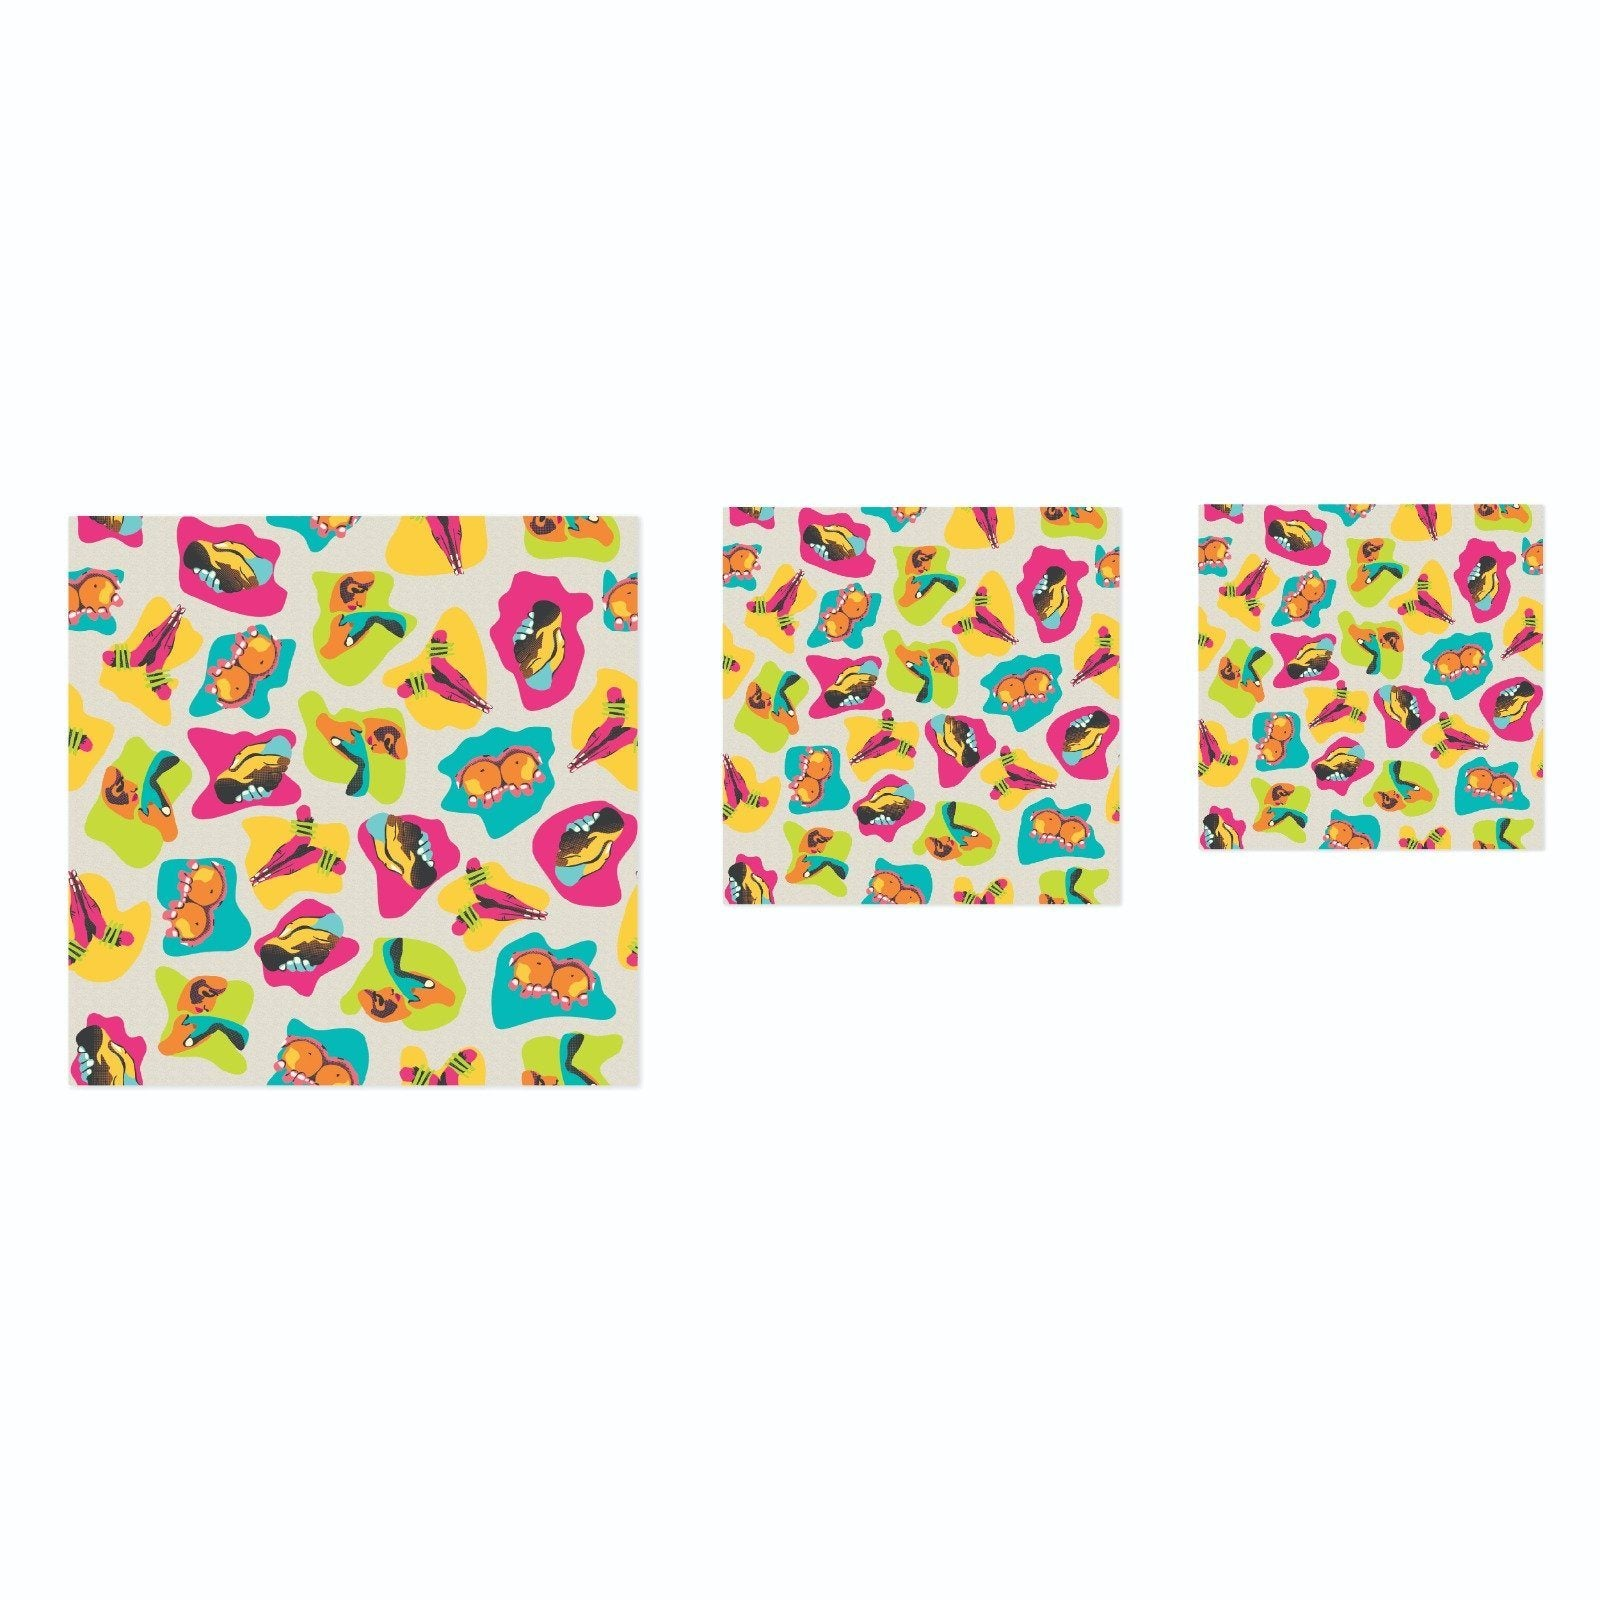 Beeswrap (Set of 3) - Colorful Prints Beeswax Wrap Creativeans